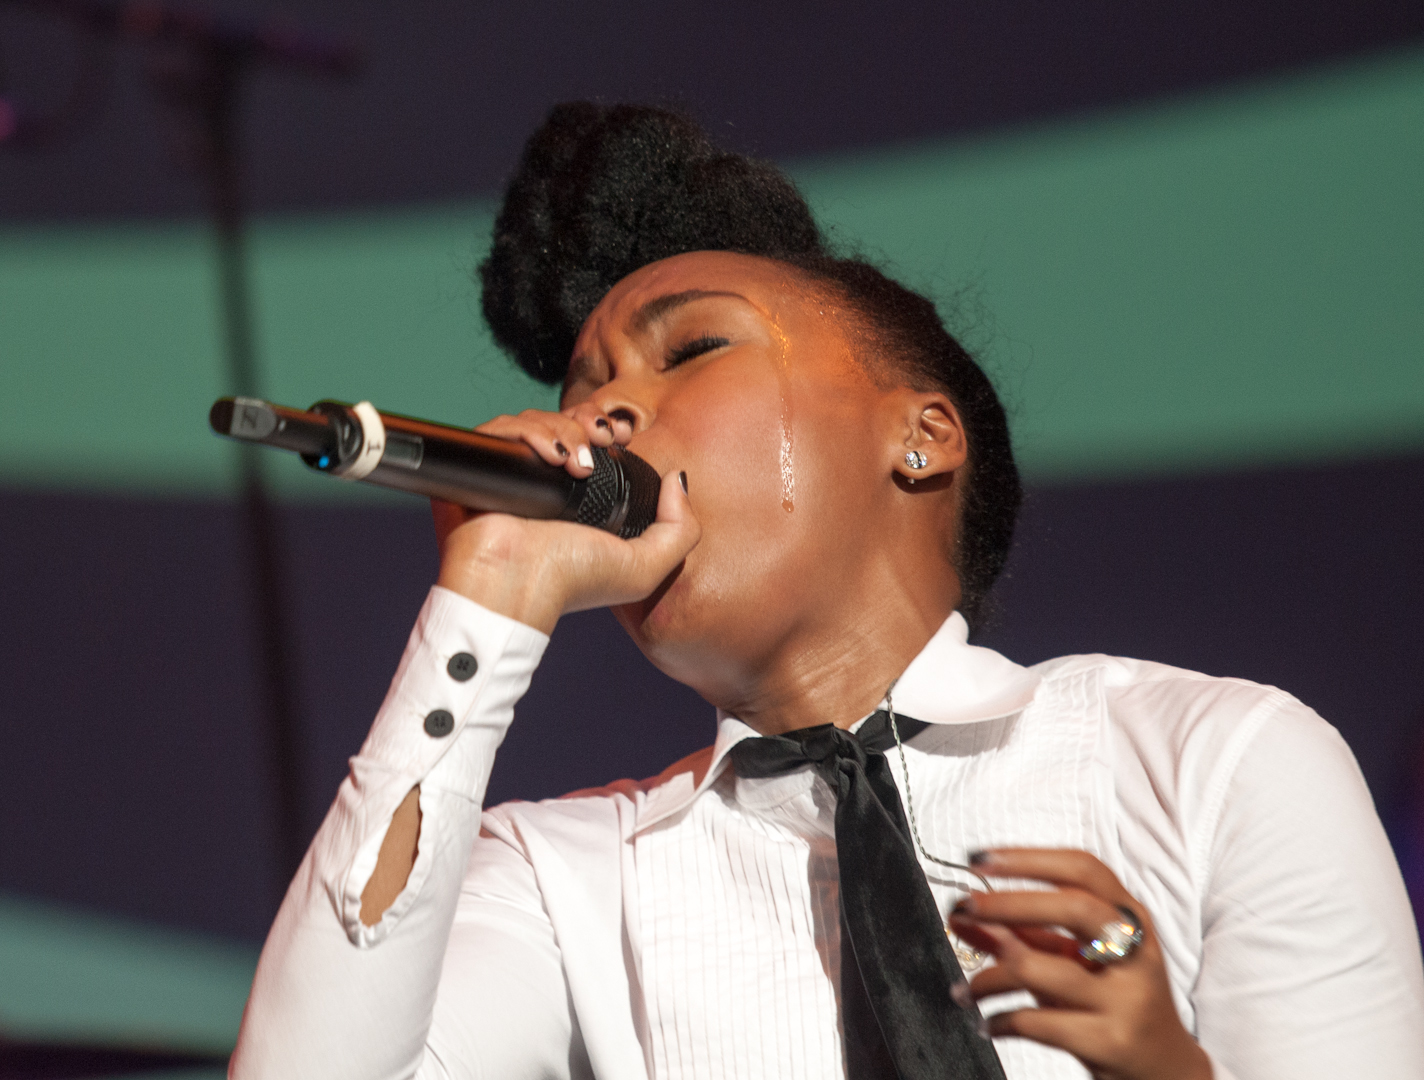 Janelle Monae At The Montreal International Jazz Festival 2012